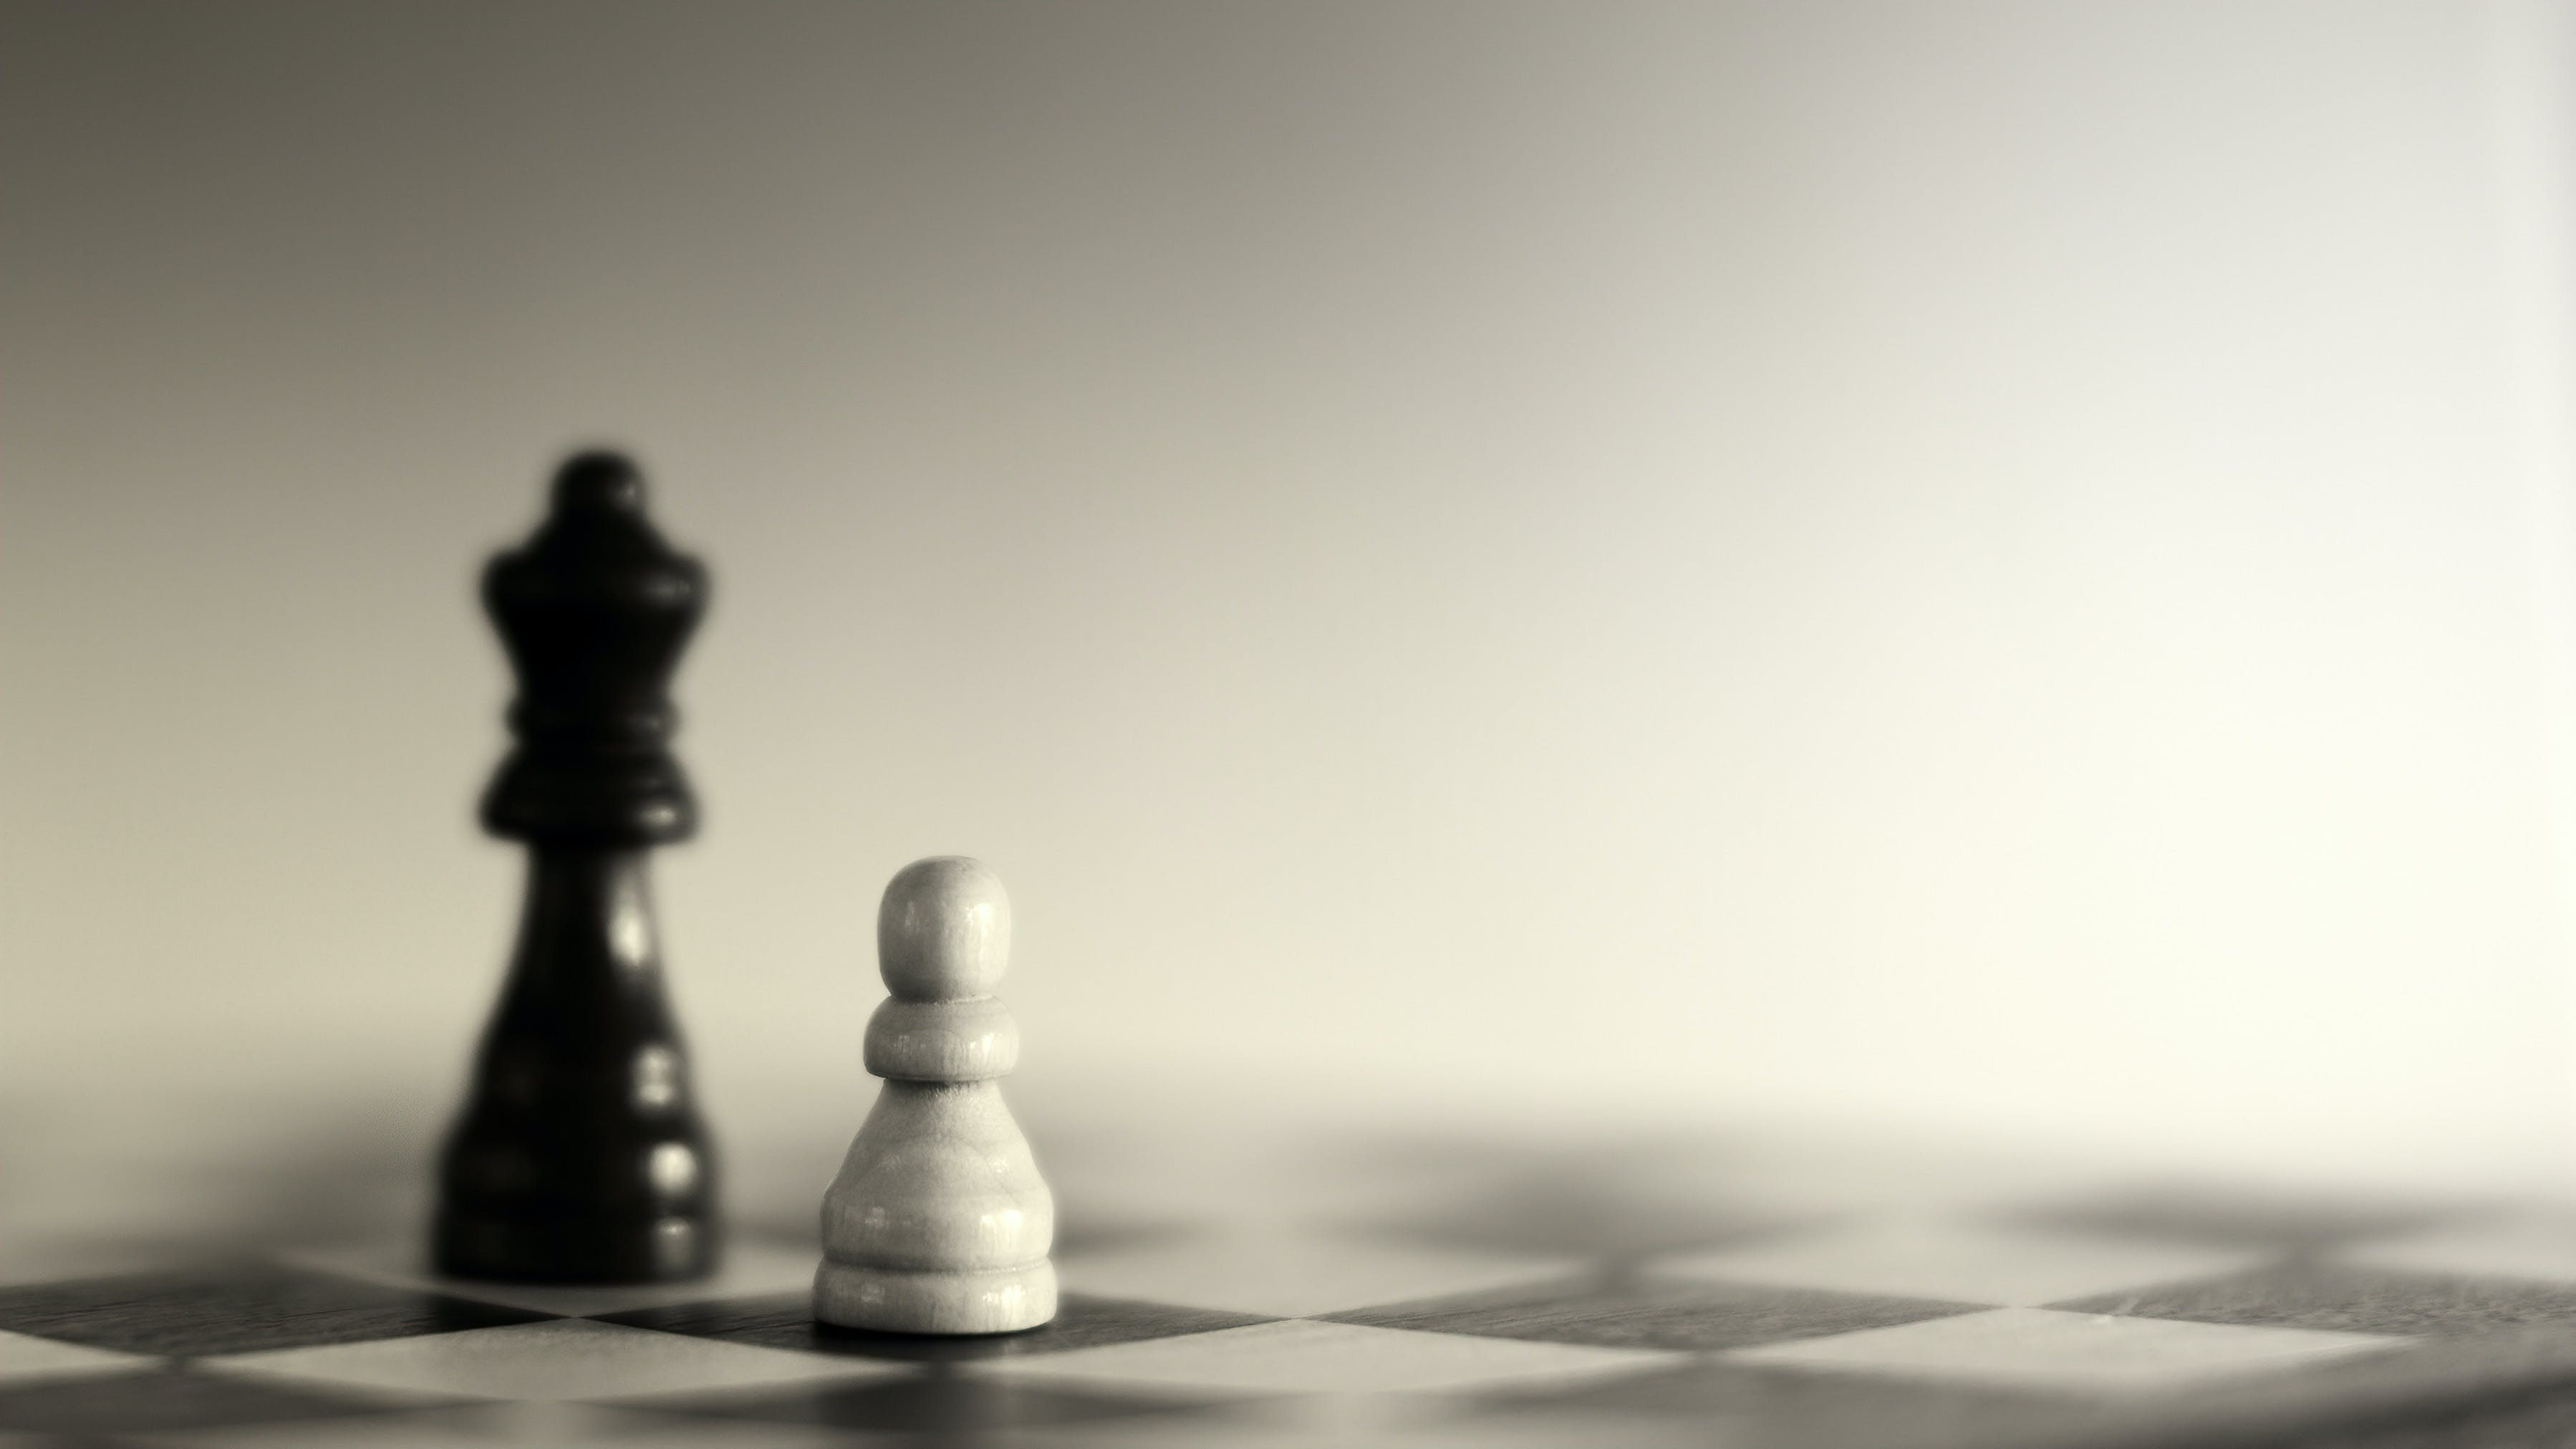 Grayscale Photography of Two Chess Pieces